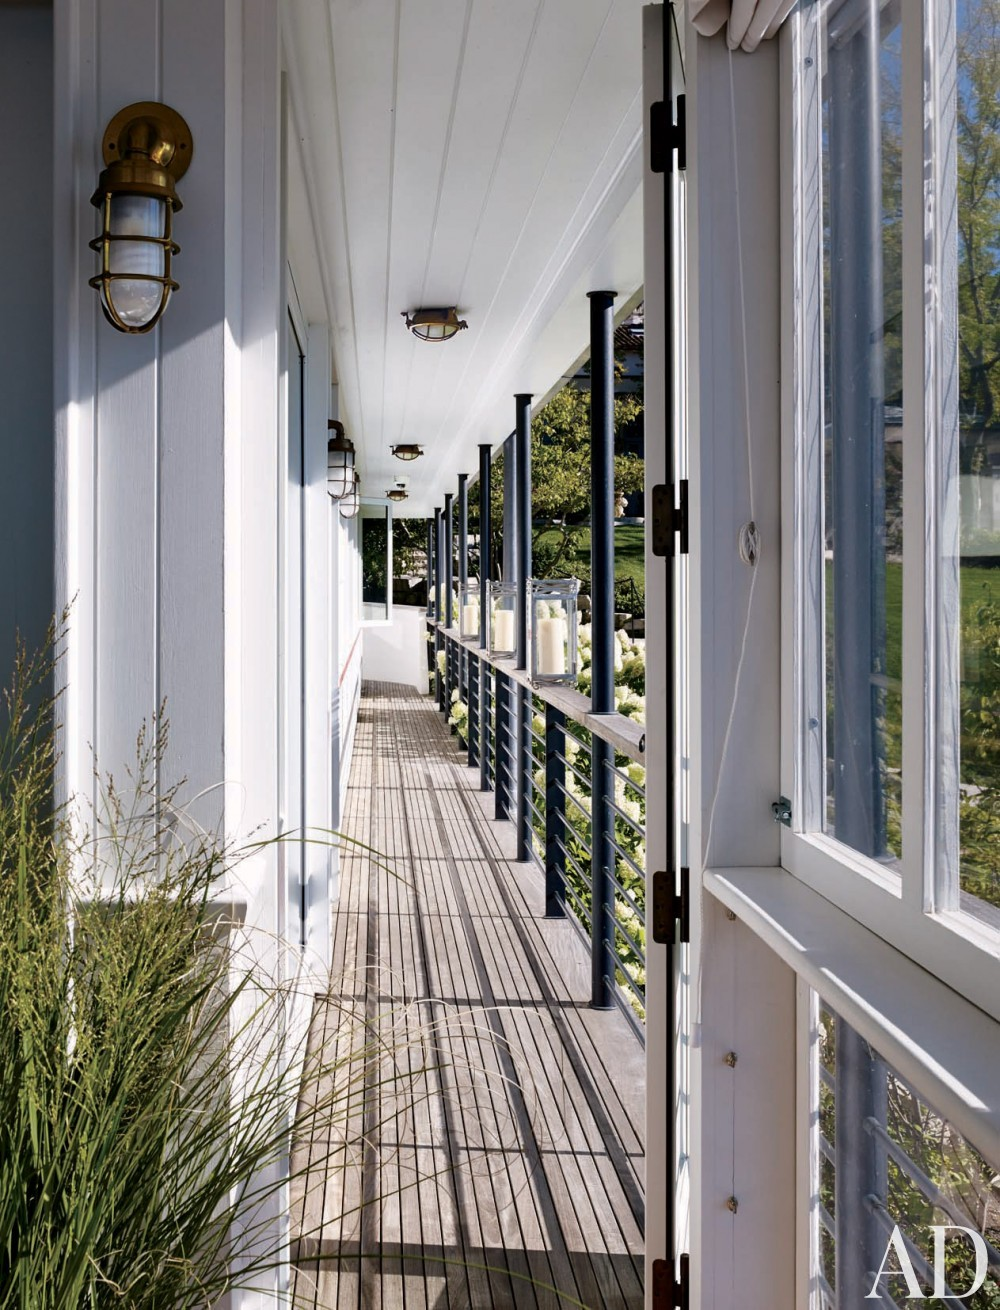 Contemporary Porch by Michael S. Smith Inc. and HBRA Architects in Geneva Lake, Wisconsin